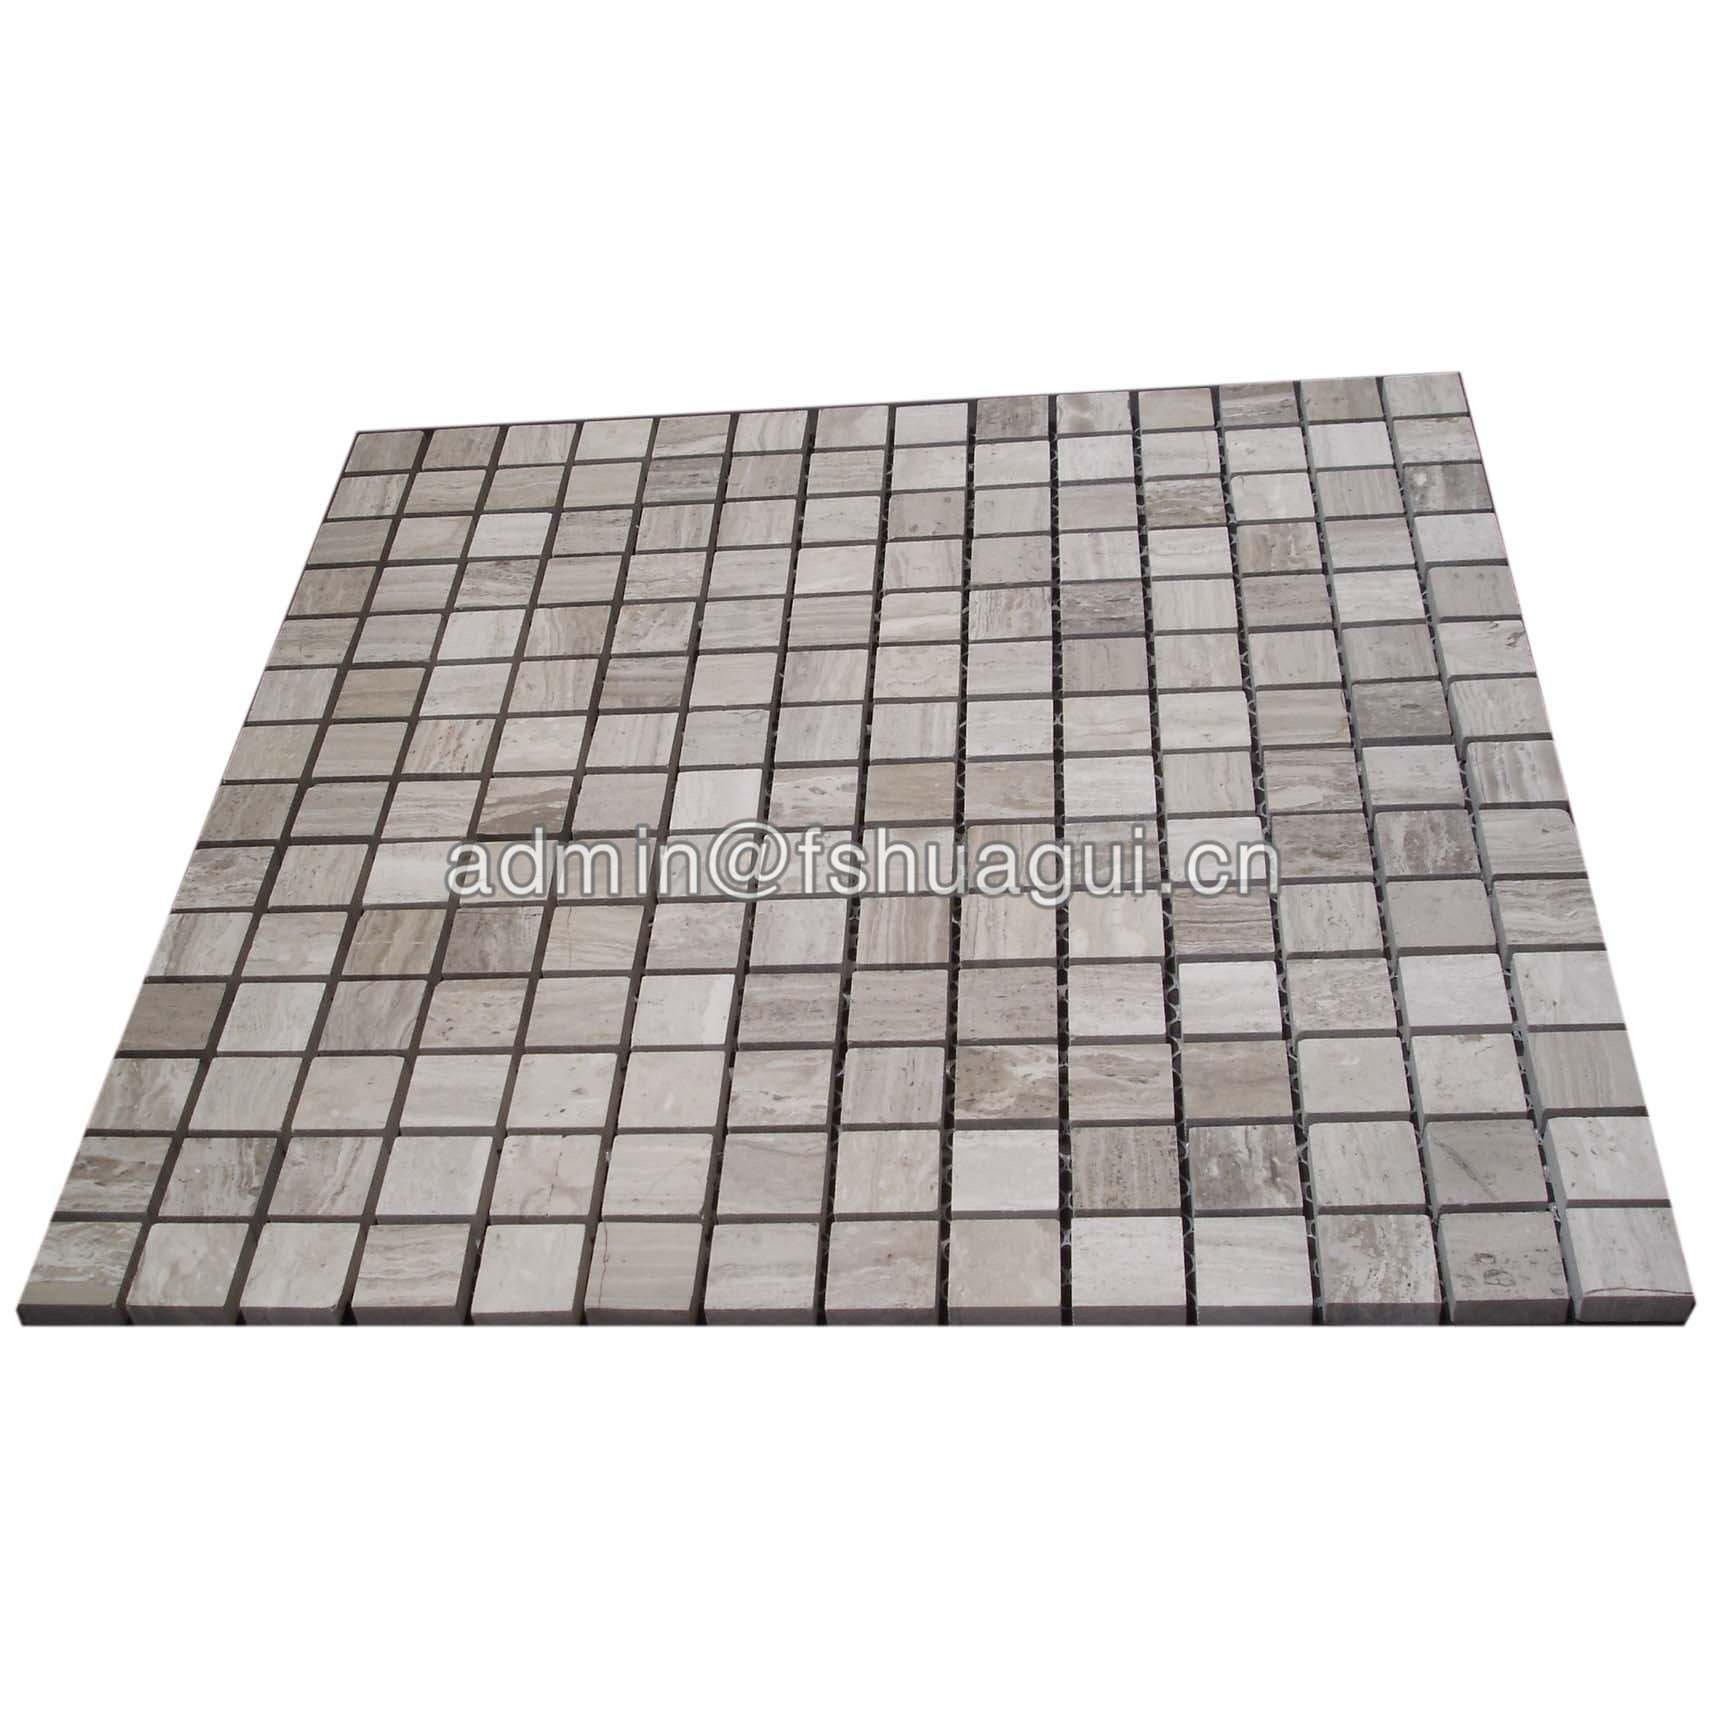 Natural Marble Stone Mosaic Tile For Wall Decoration